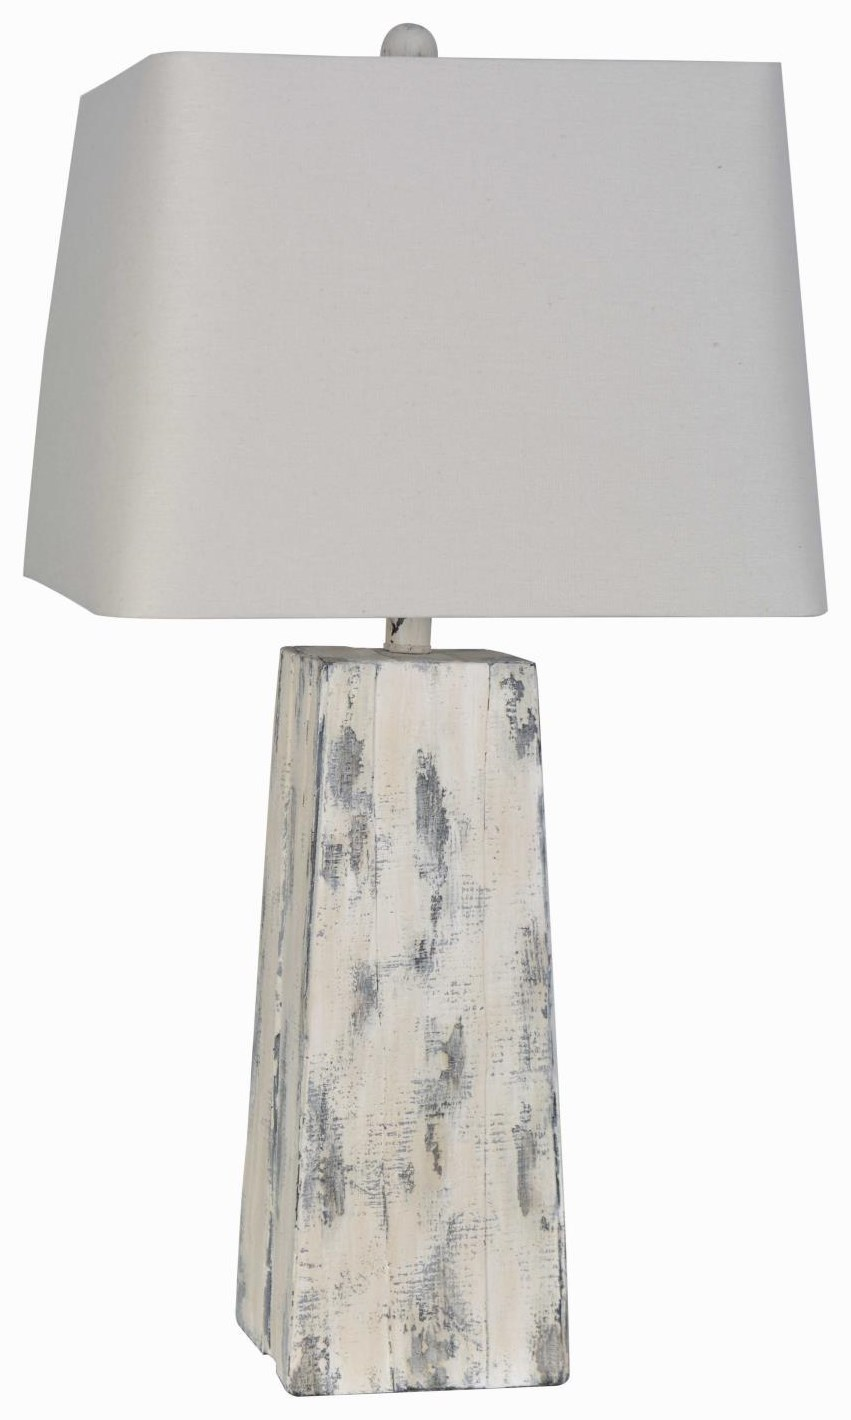 LPS-291 Table Lamp